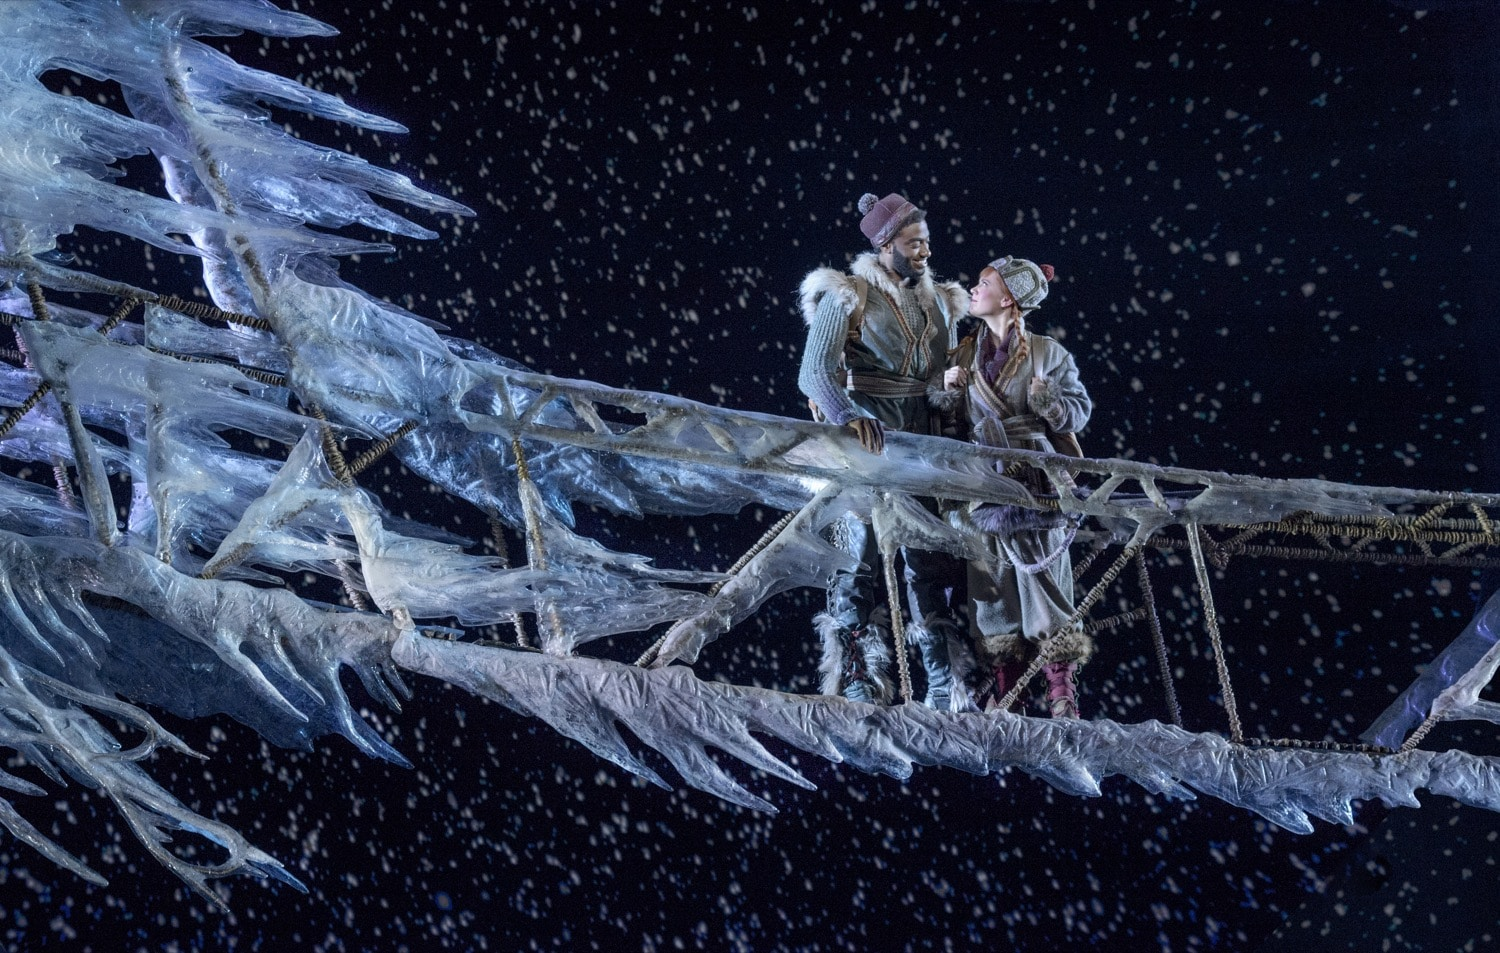 Jelani Alladin (Kristoff) and Patti Murin (Anna) in FROZEN on Broadway | Photo by Deen van Meer